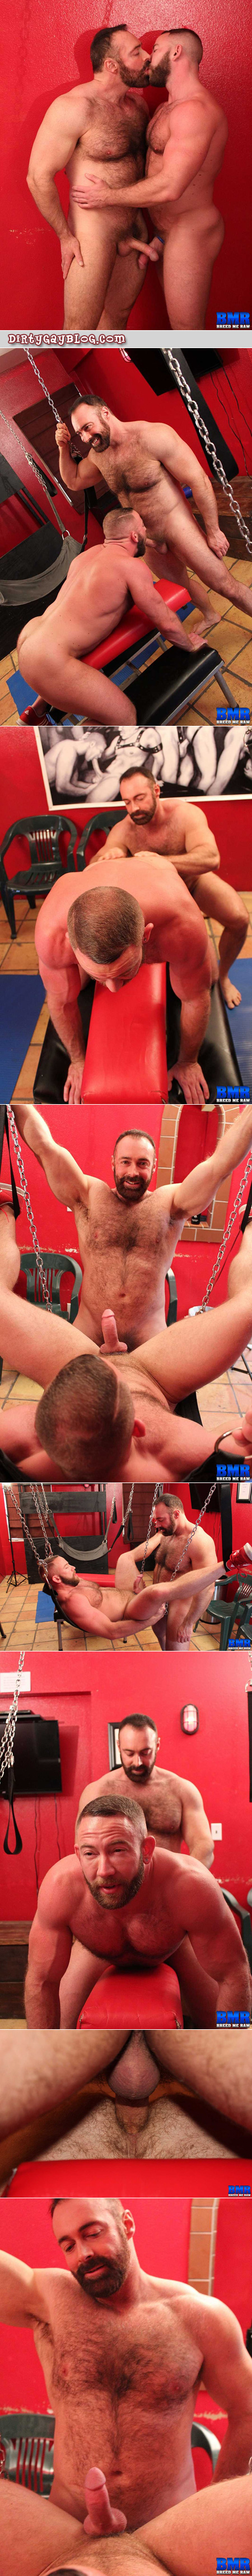 Muscle bears fucking bareback using different slings and sex furniture.